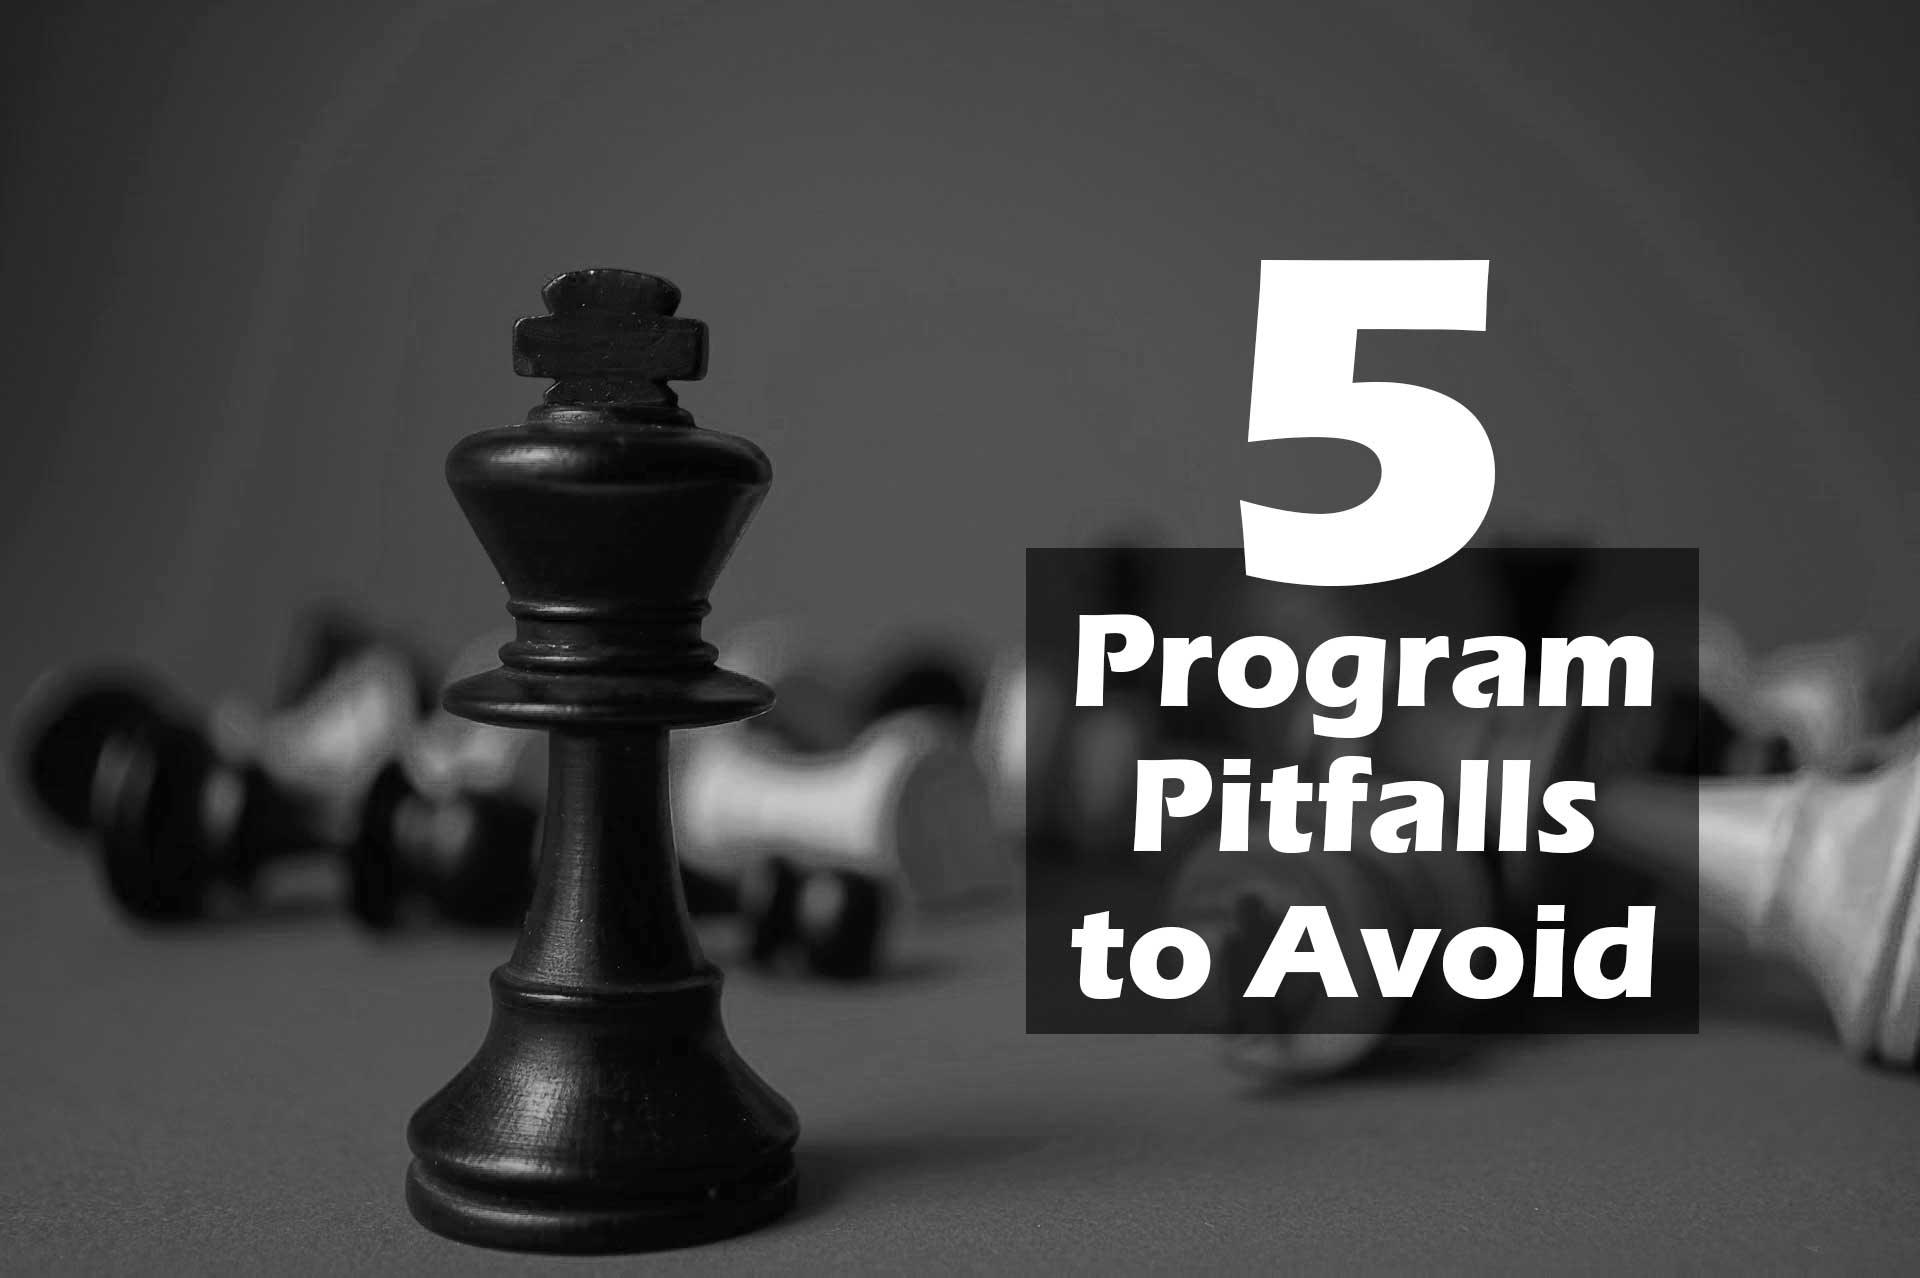 Nonprofit Program Pitfalls